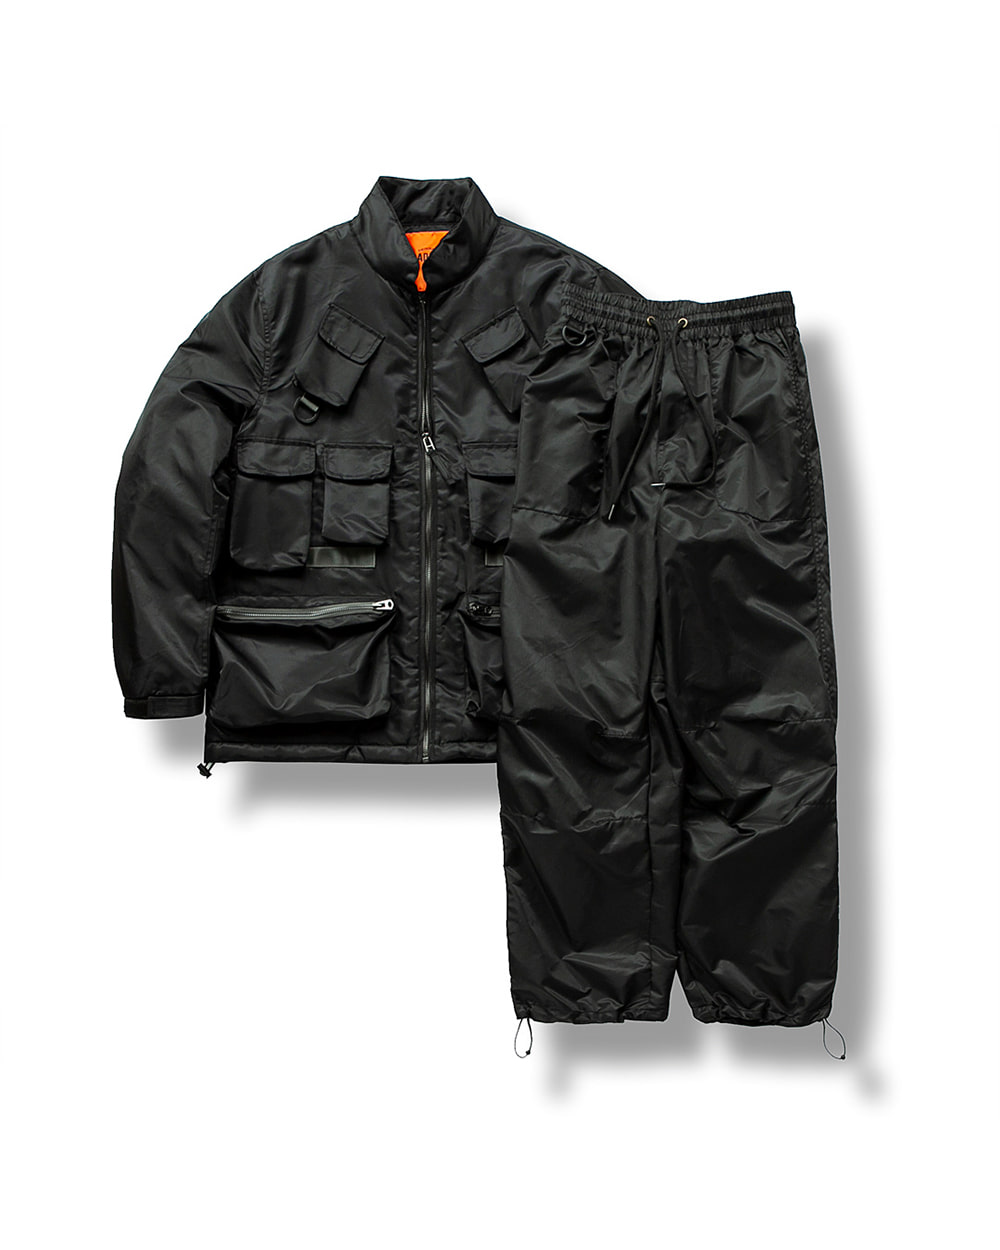 (VLADIMIR) FISHERMAN UTILITY SET UP BLACK